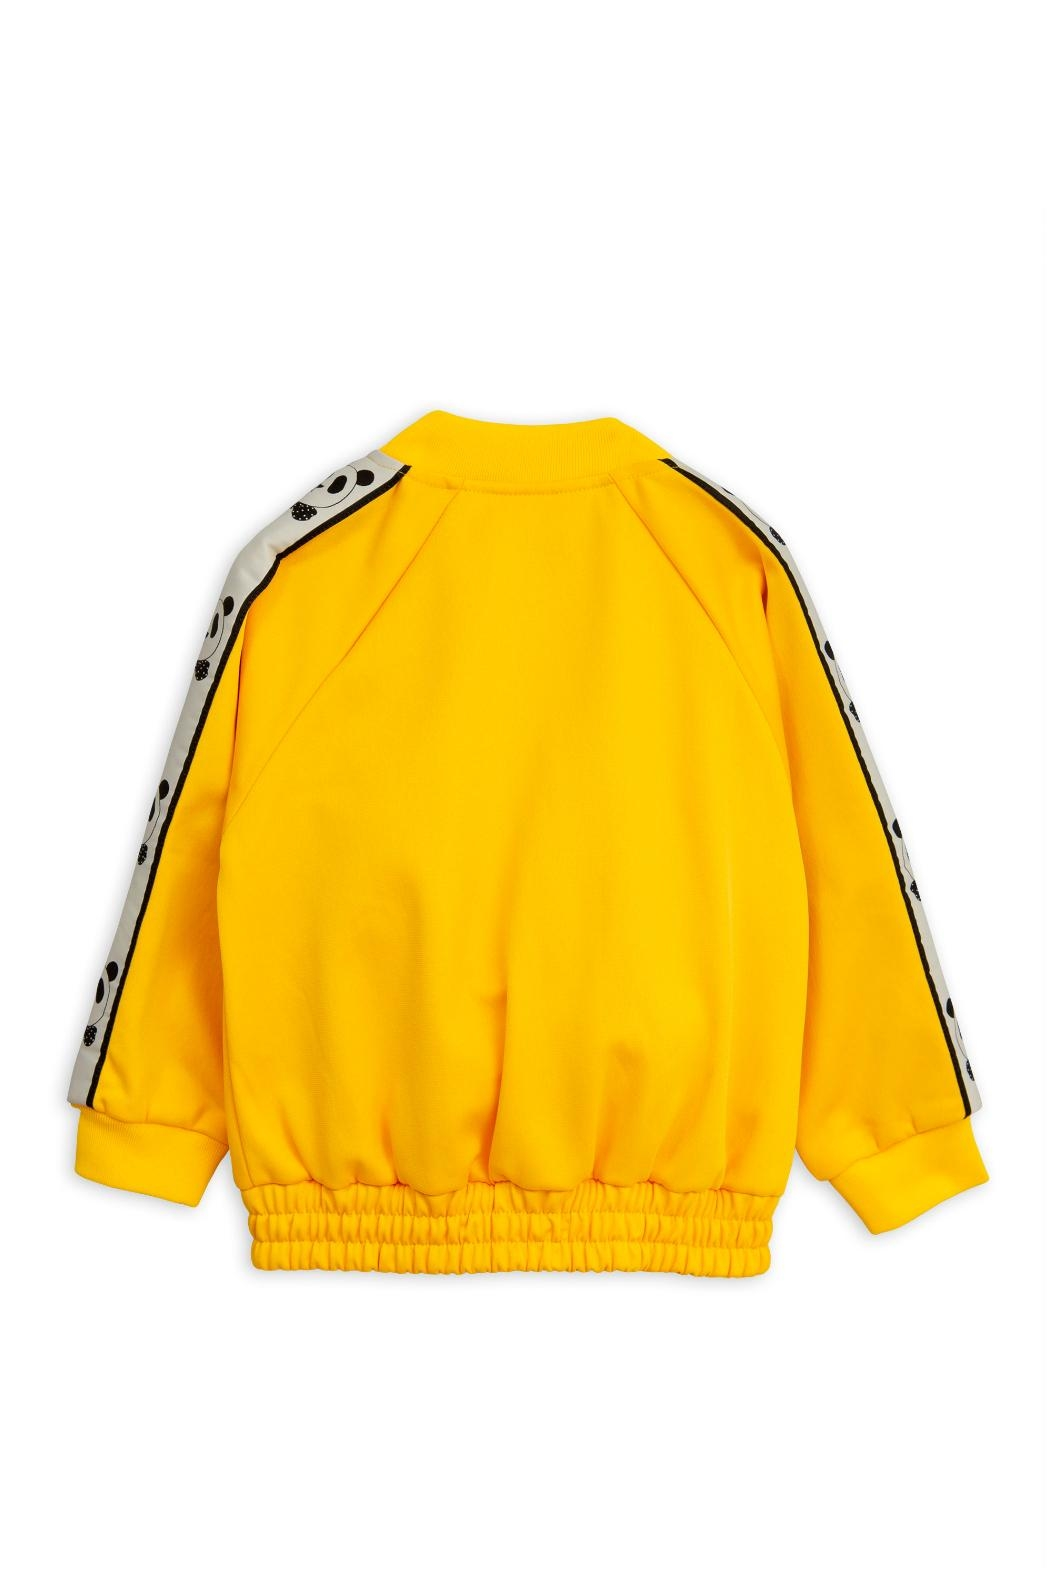 Mini Rodini Yellow Panda Jacket - Front Full Image